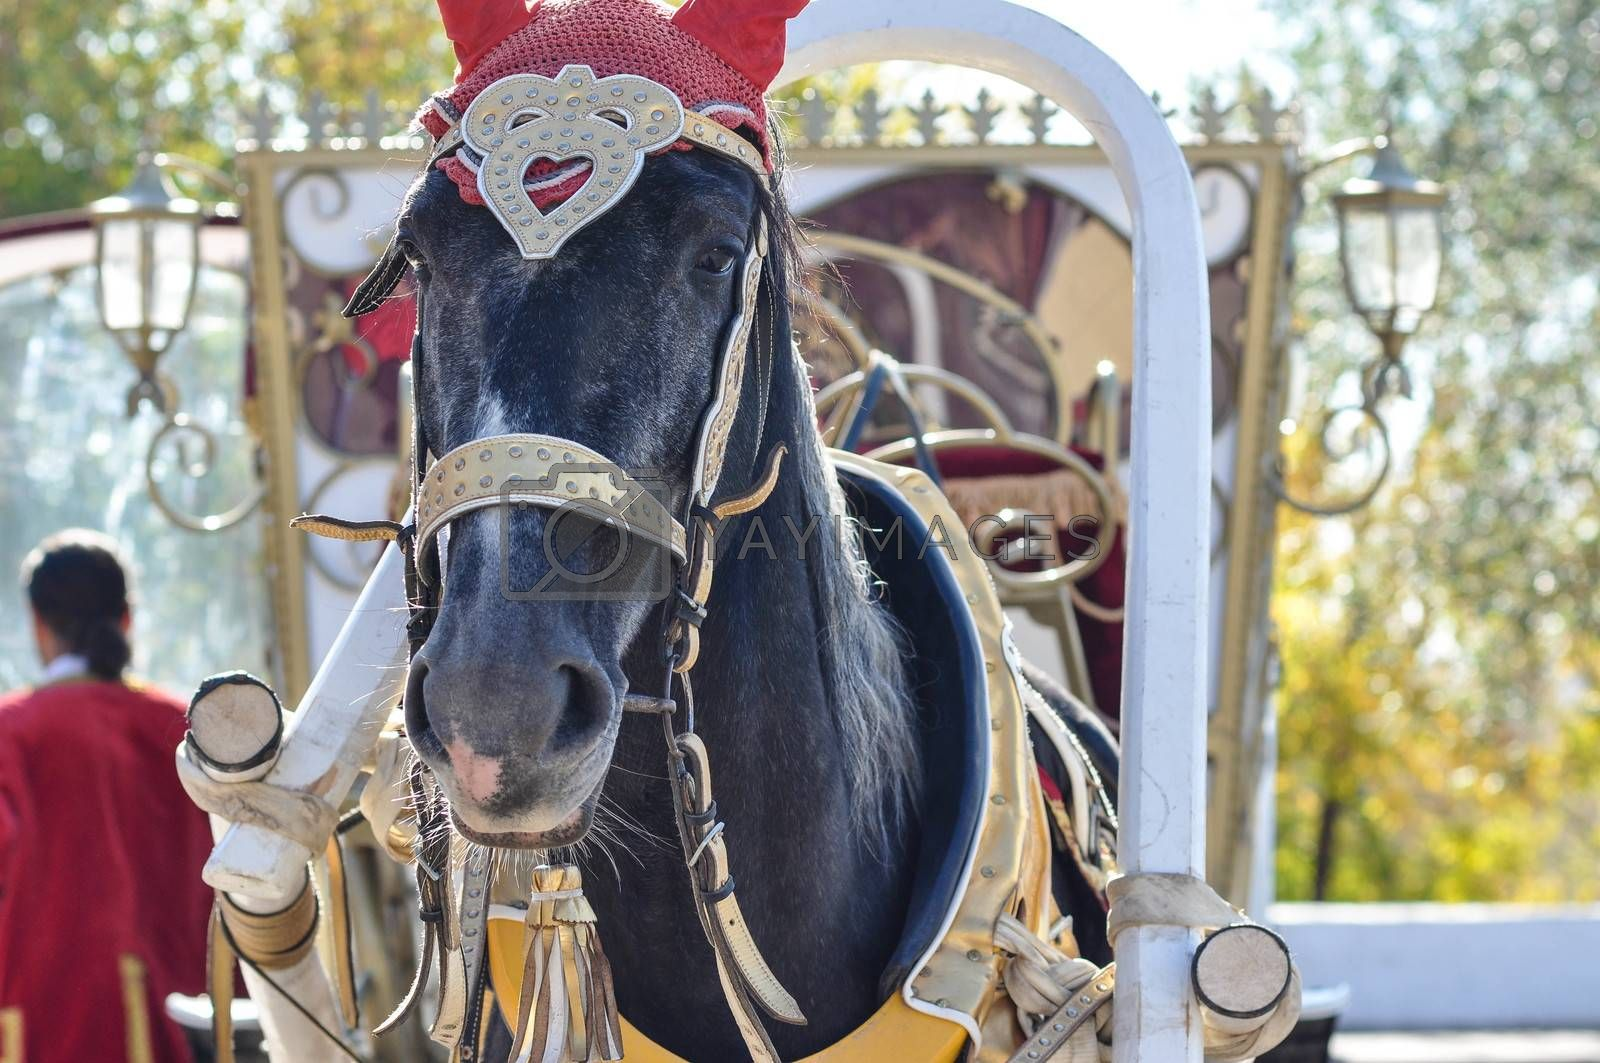 Wedding horse harnessed to a carriage for bride and groom